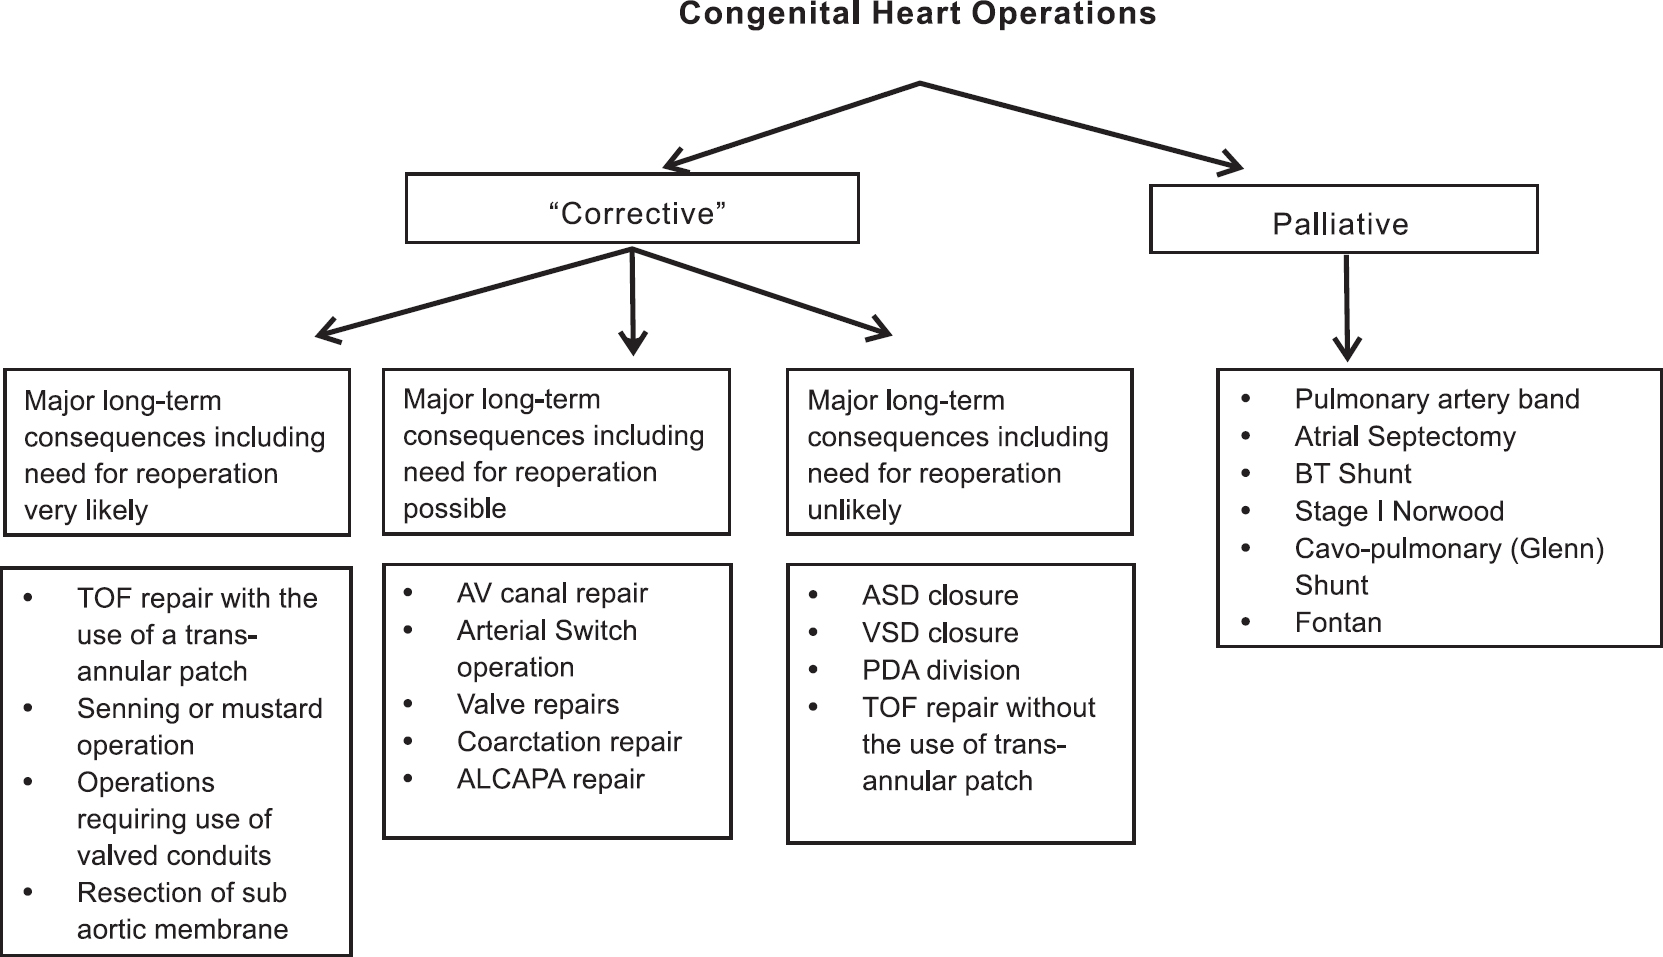 View image figure 2 a simplified classification of congenital heart operations based on expected long term ccuart Gallery